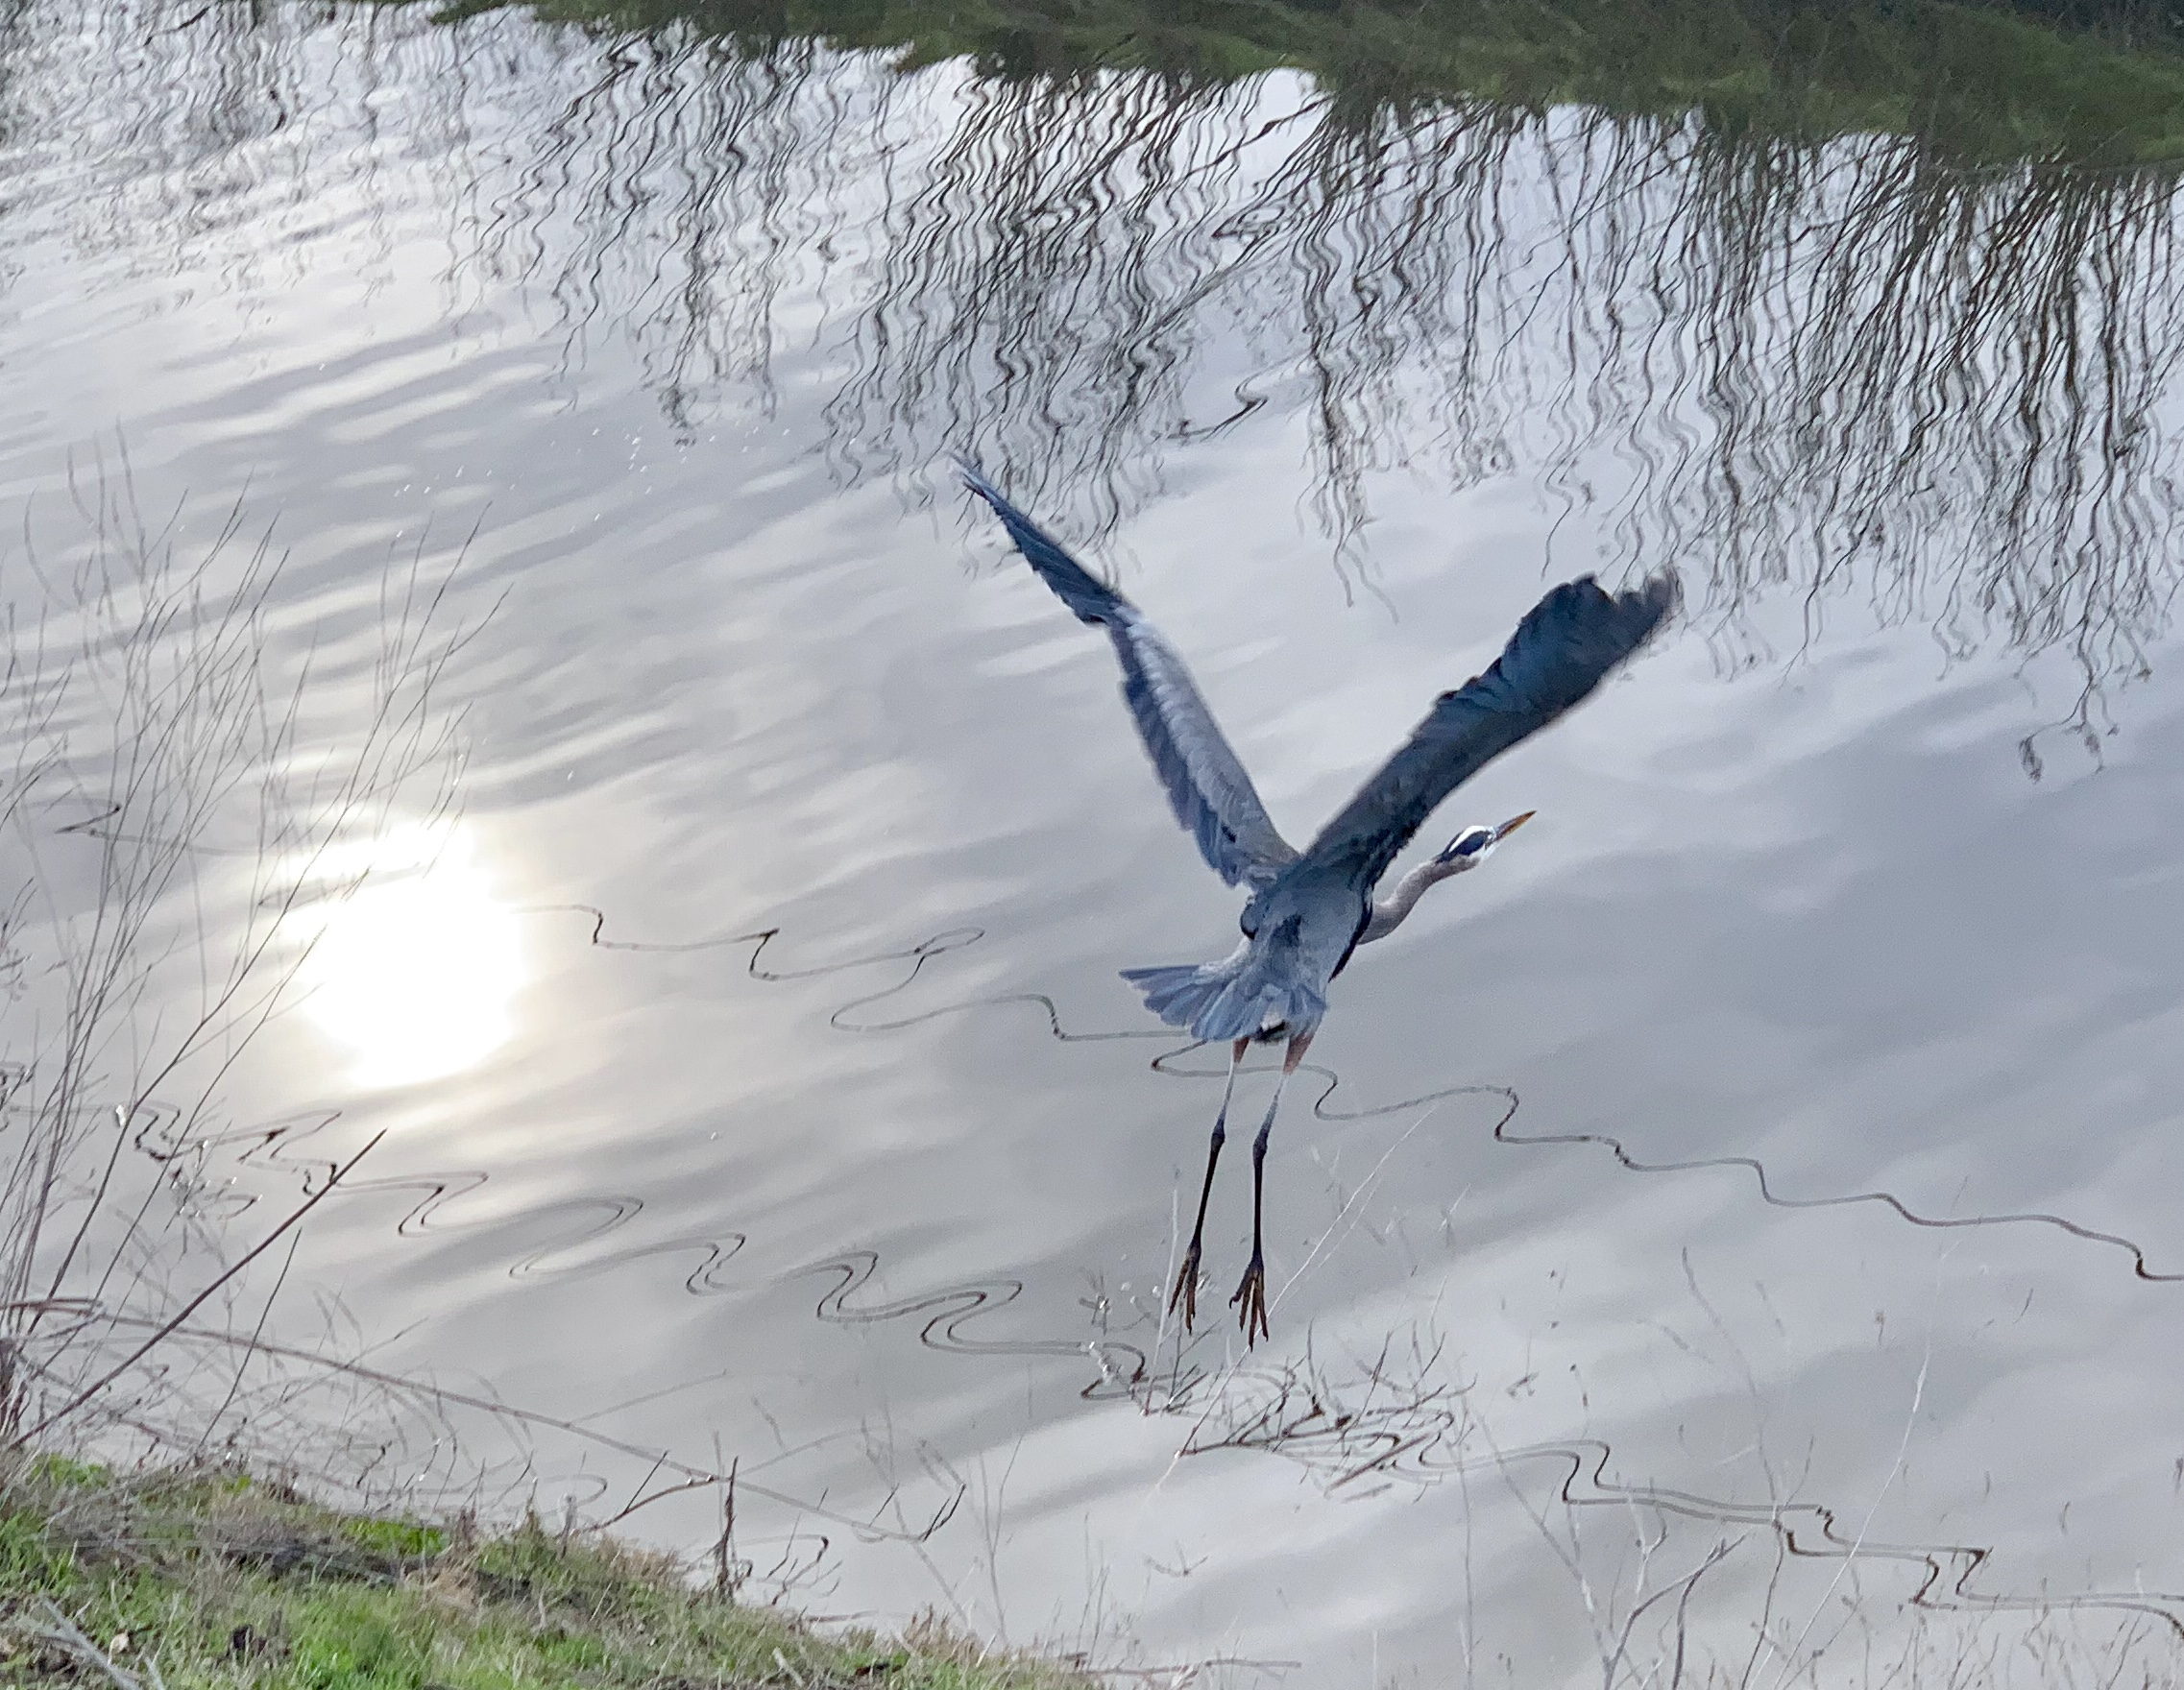 A Great Blue Heron takes flight.